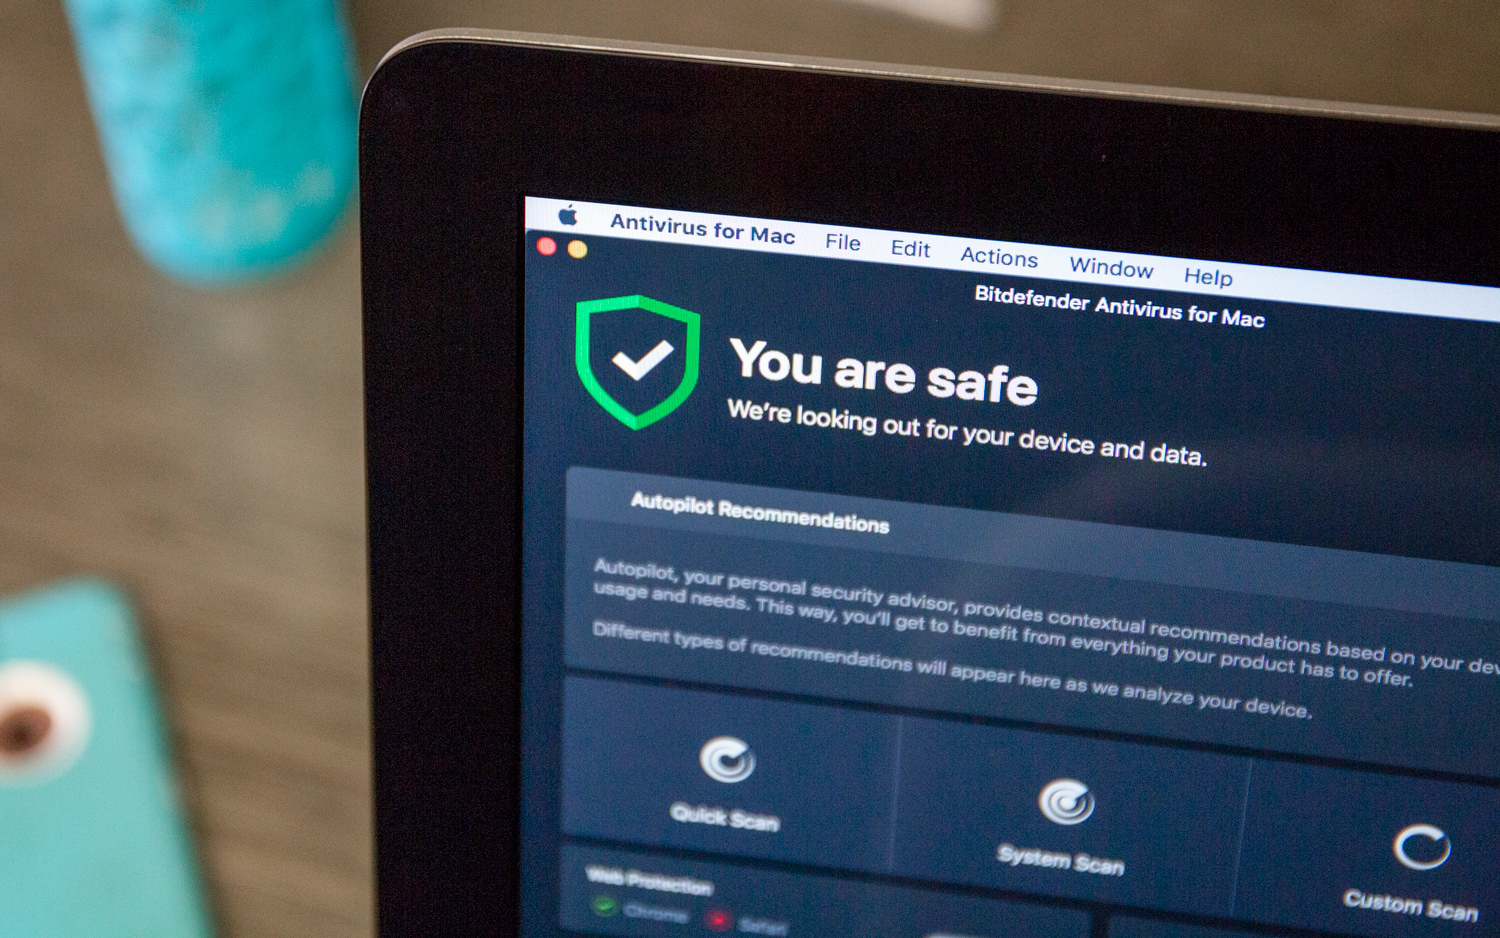 Best Mac Antivirus Software of 2019 - Virus Protection for